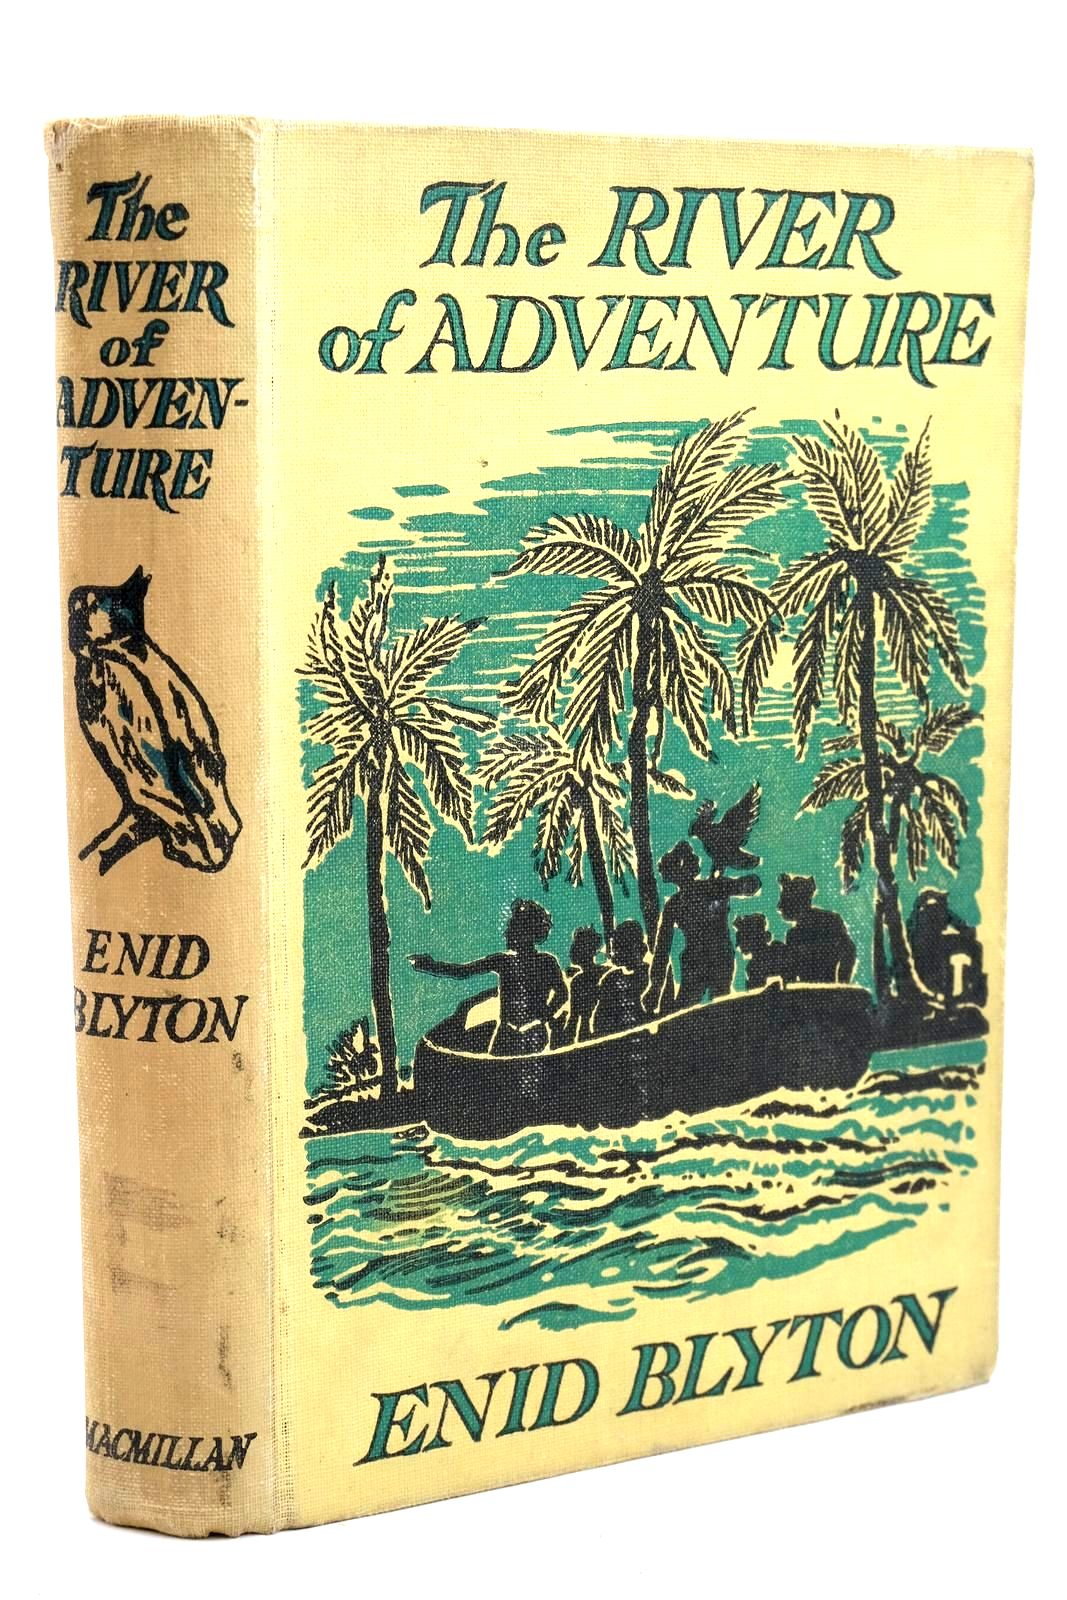 Photo of THE RIVER OF ADVENTURE written by Blyton, Enid illustrated by Tresilian, Stuart published by Macmillan & Co. Ltd. (STOCK CODE: 1320743)  for sale by Stella & Rose's Books